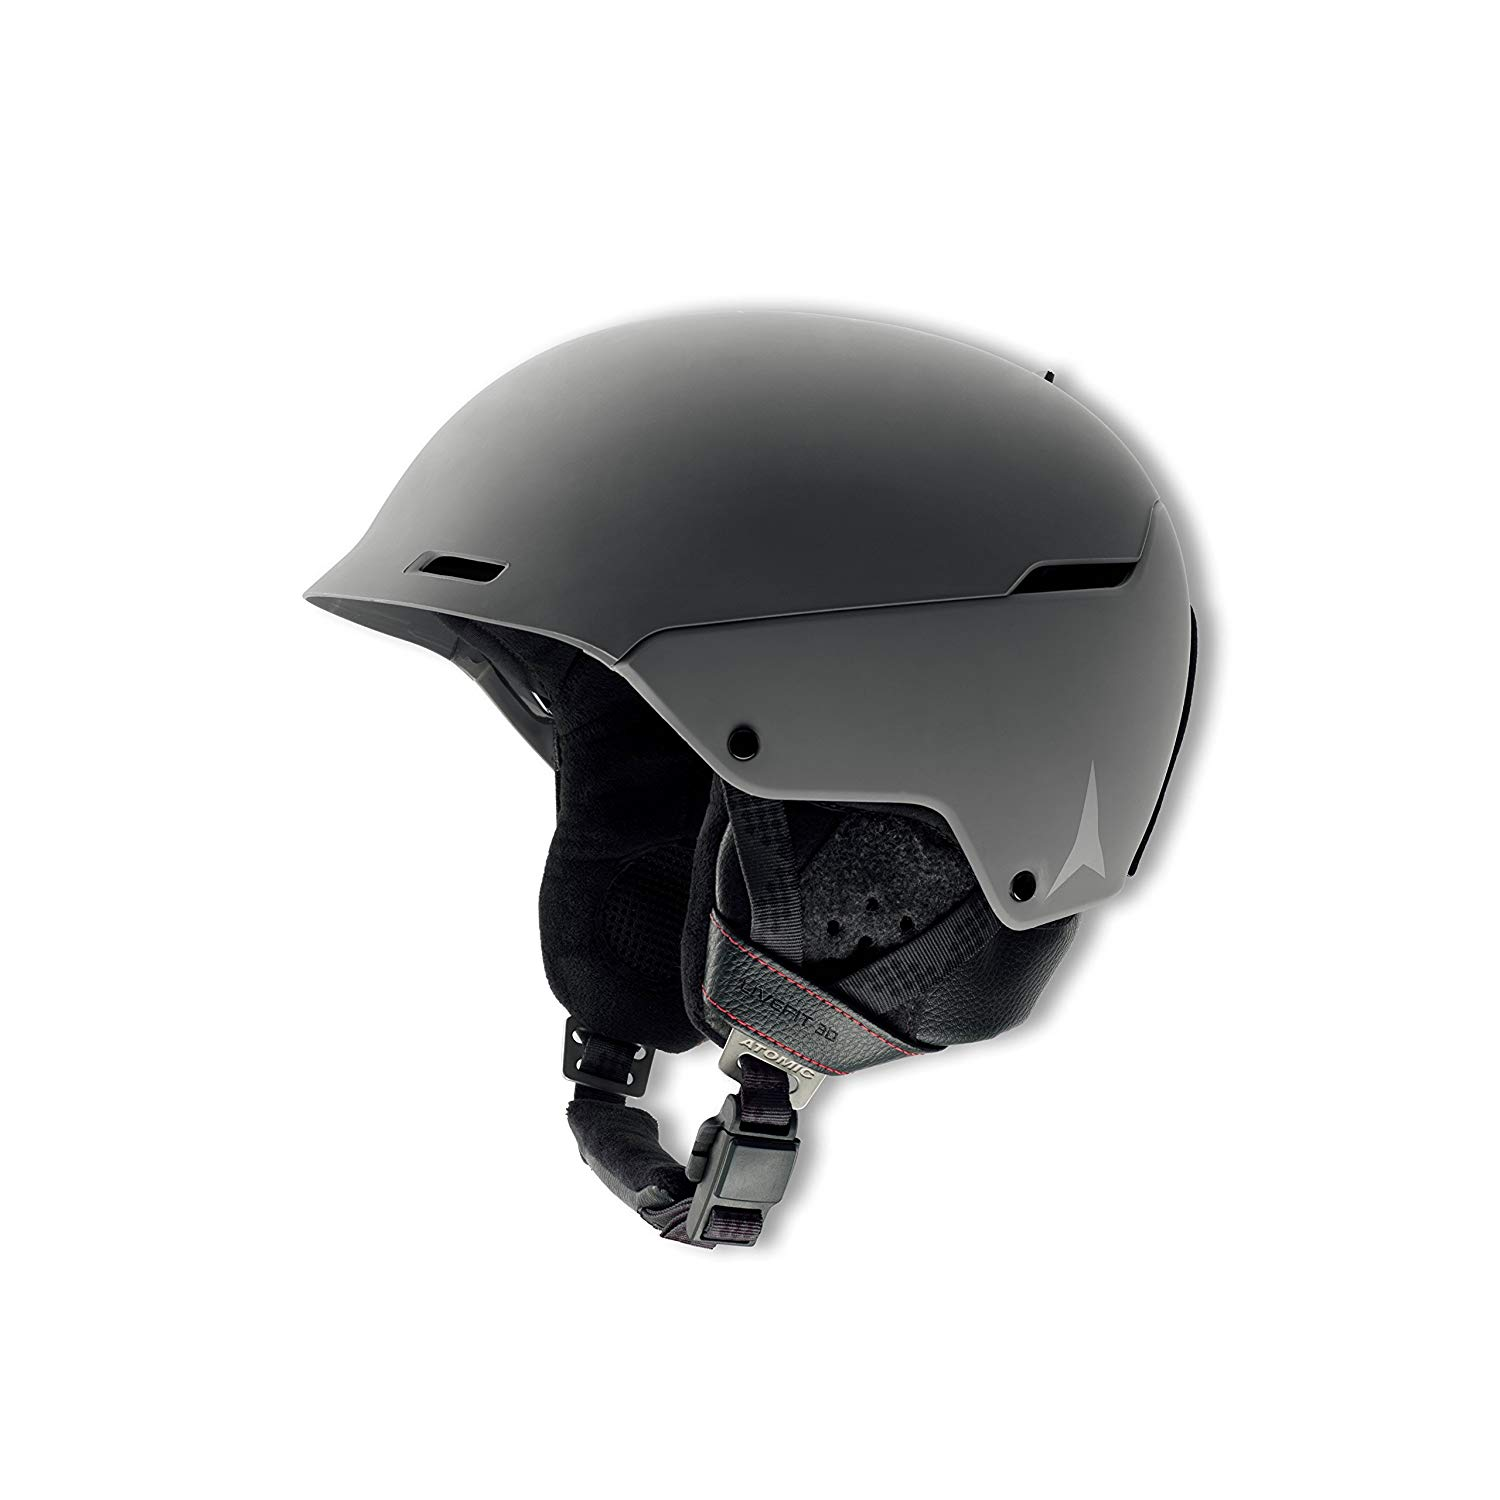 f3e79f7de8339 Get Quotations · Atomic Automatic LF 3D Ski Helmet